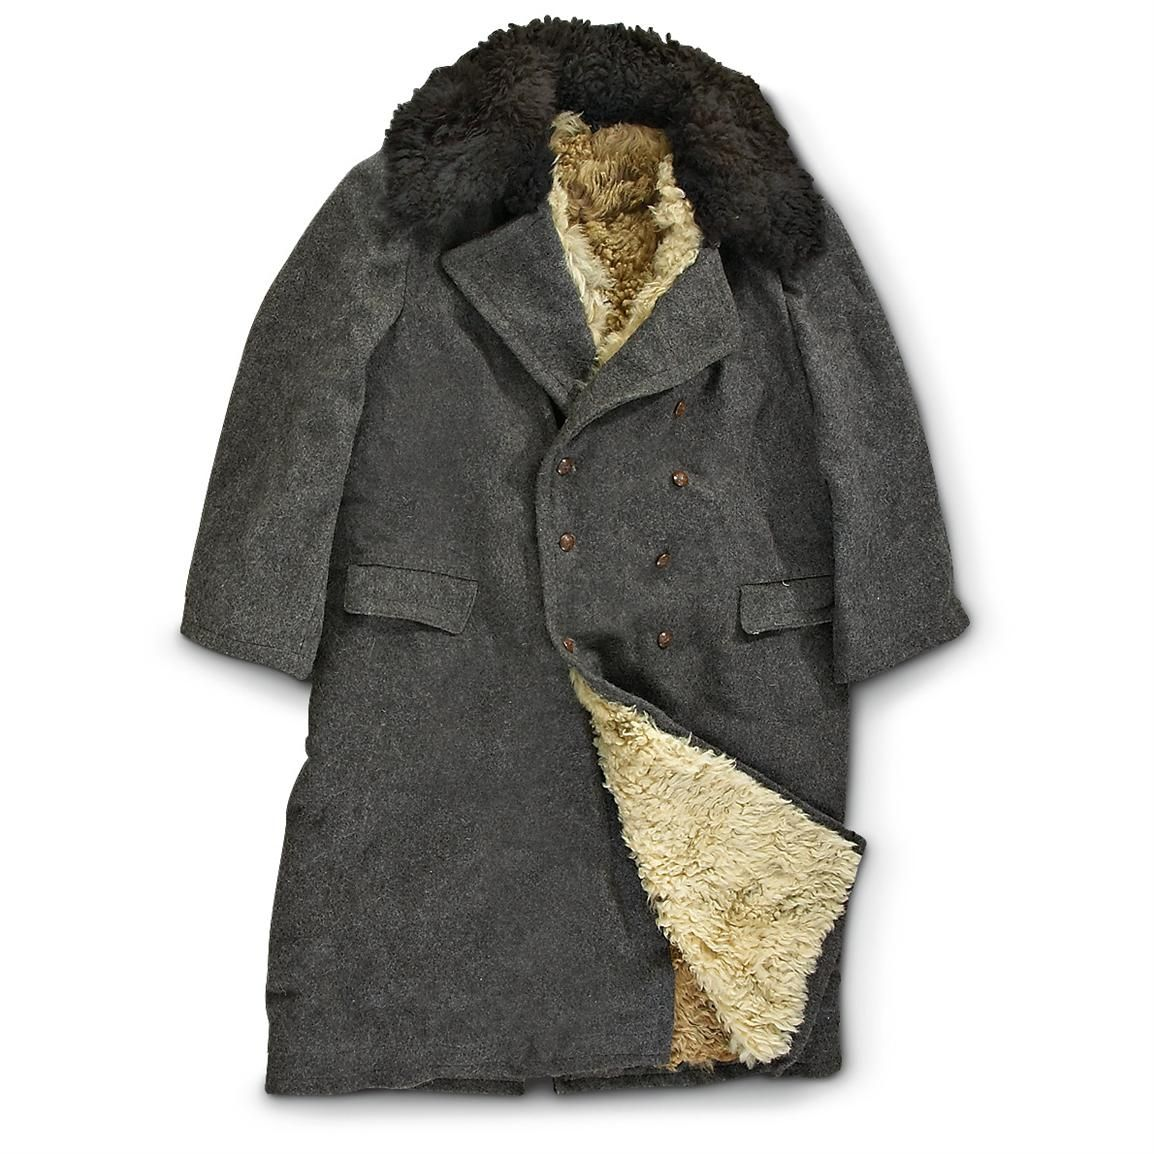 New Bulgarian Military Surplus Wool Trench Coat, Gray with ...